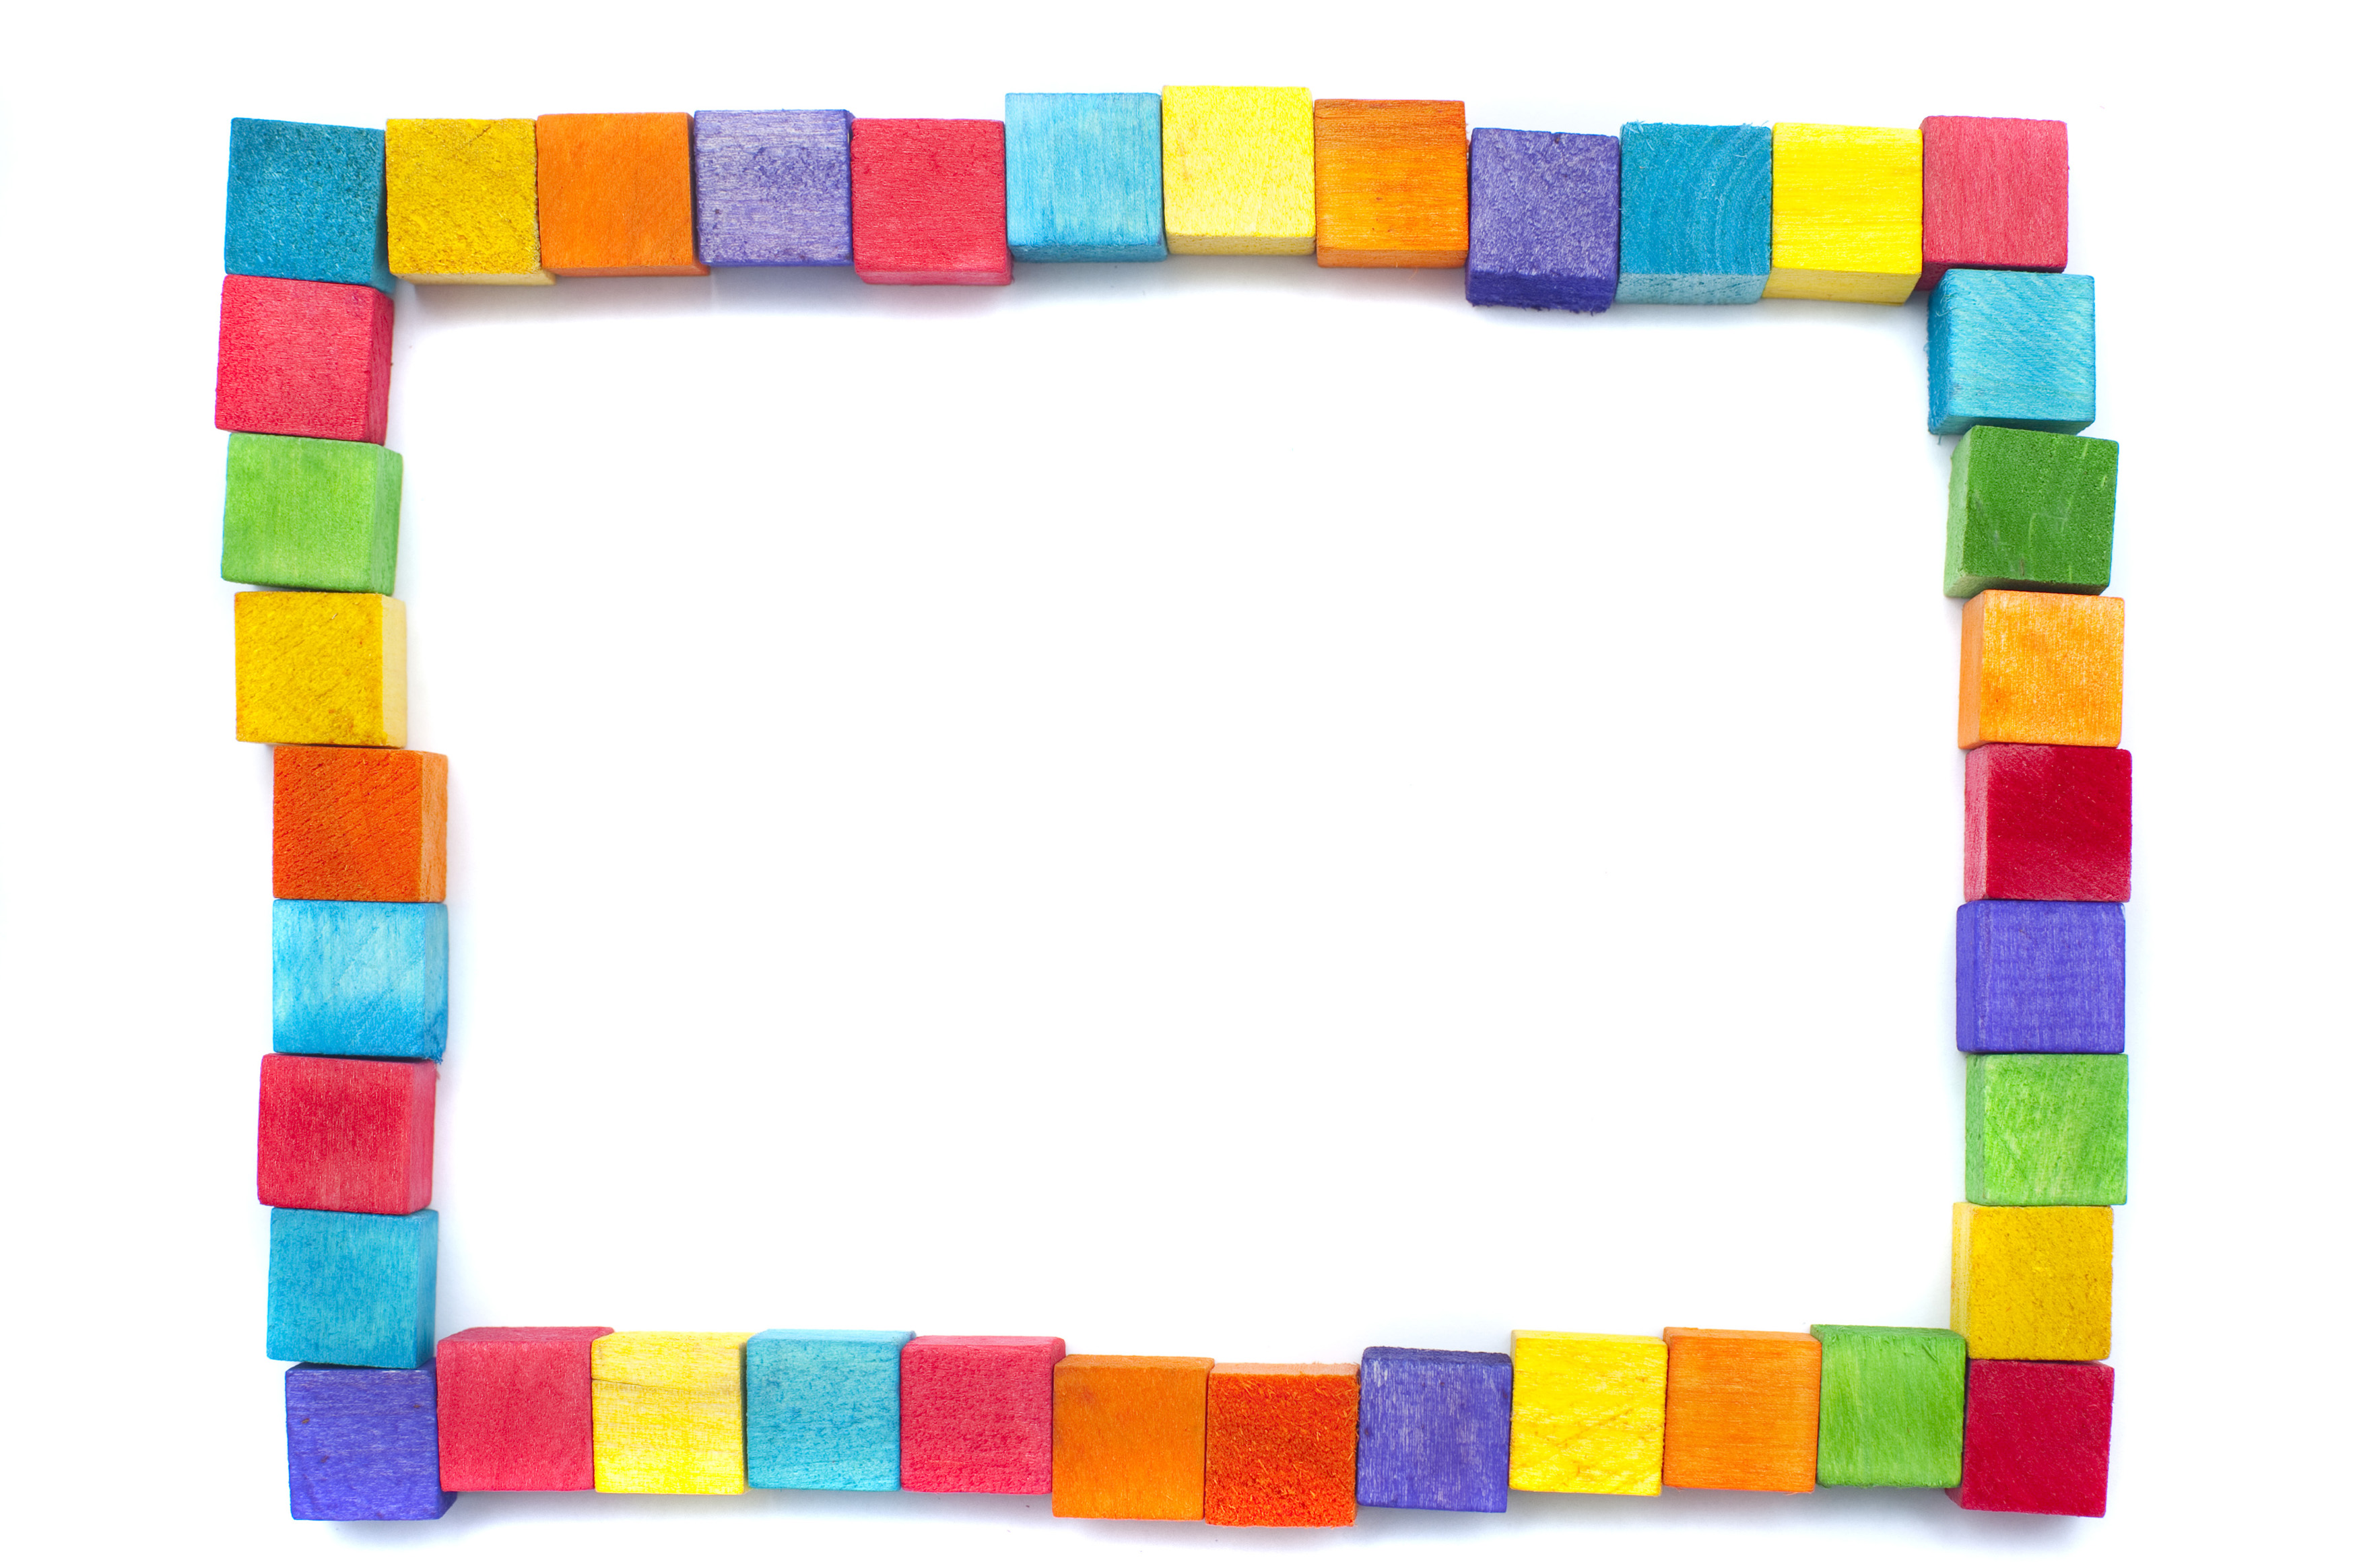 Free image of Rectangular frame of colorful wooden blocks